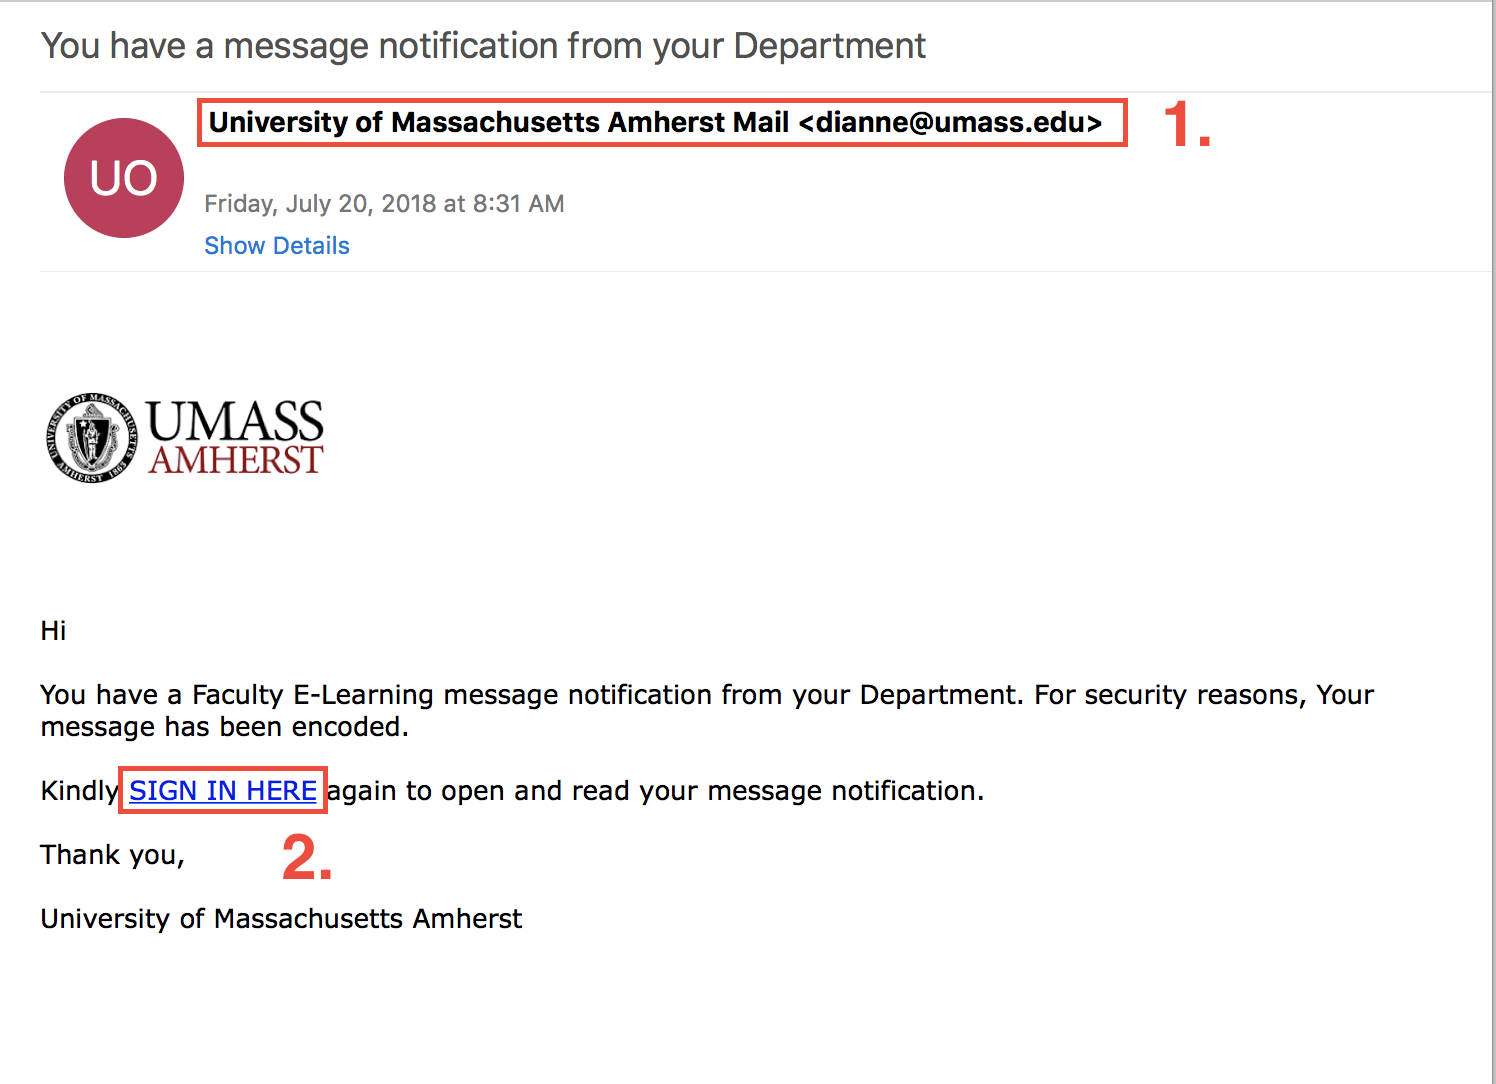 phishing message example 7 20 18